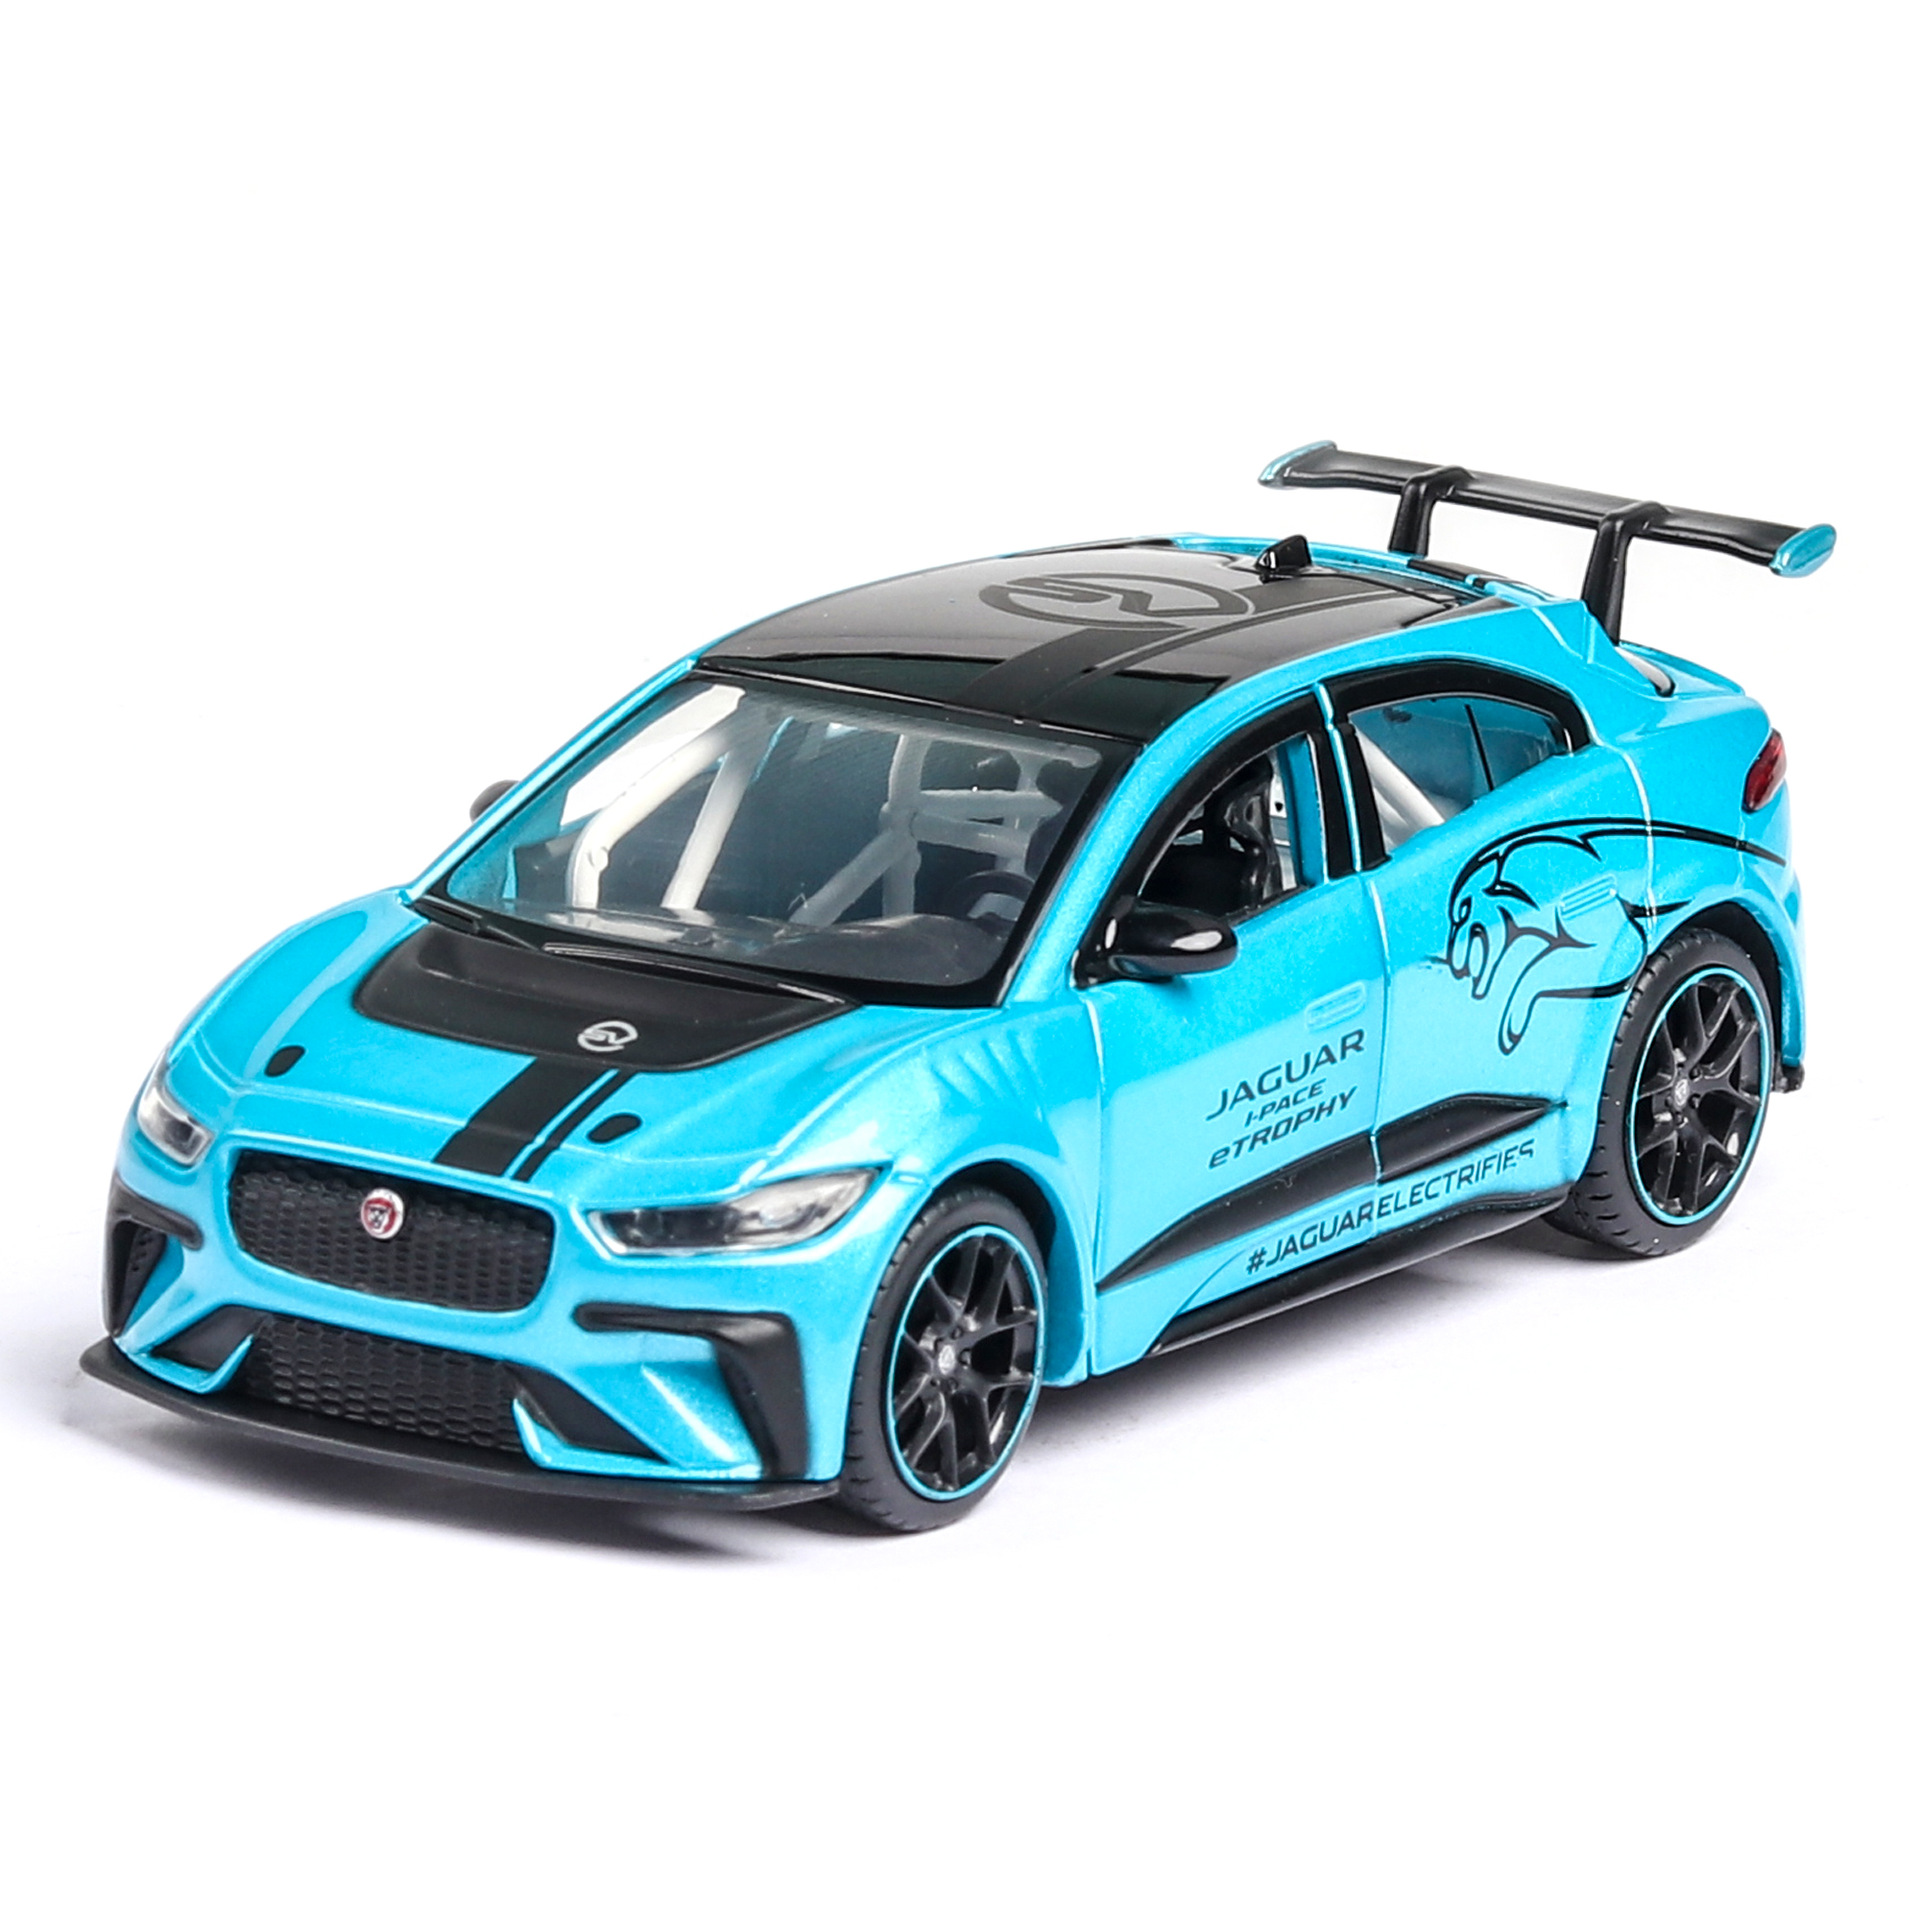 (bulk) Simulation 1:36 Jaguar I PACE Children's Toy Alloy Sports Car Baking Accessories Ornaments